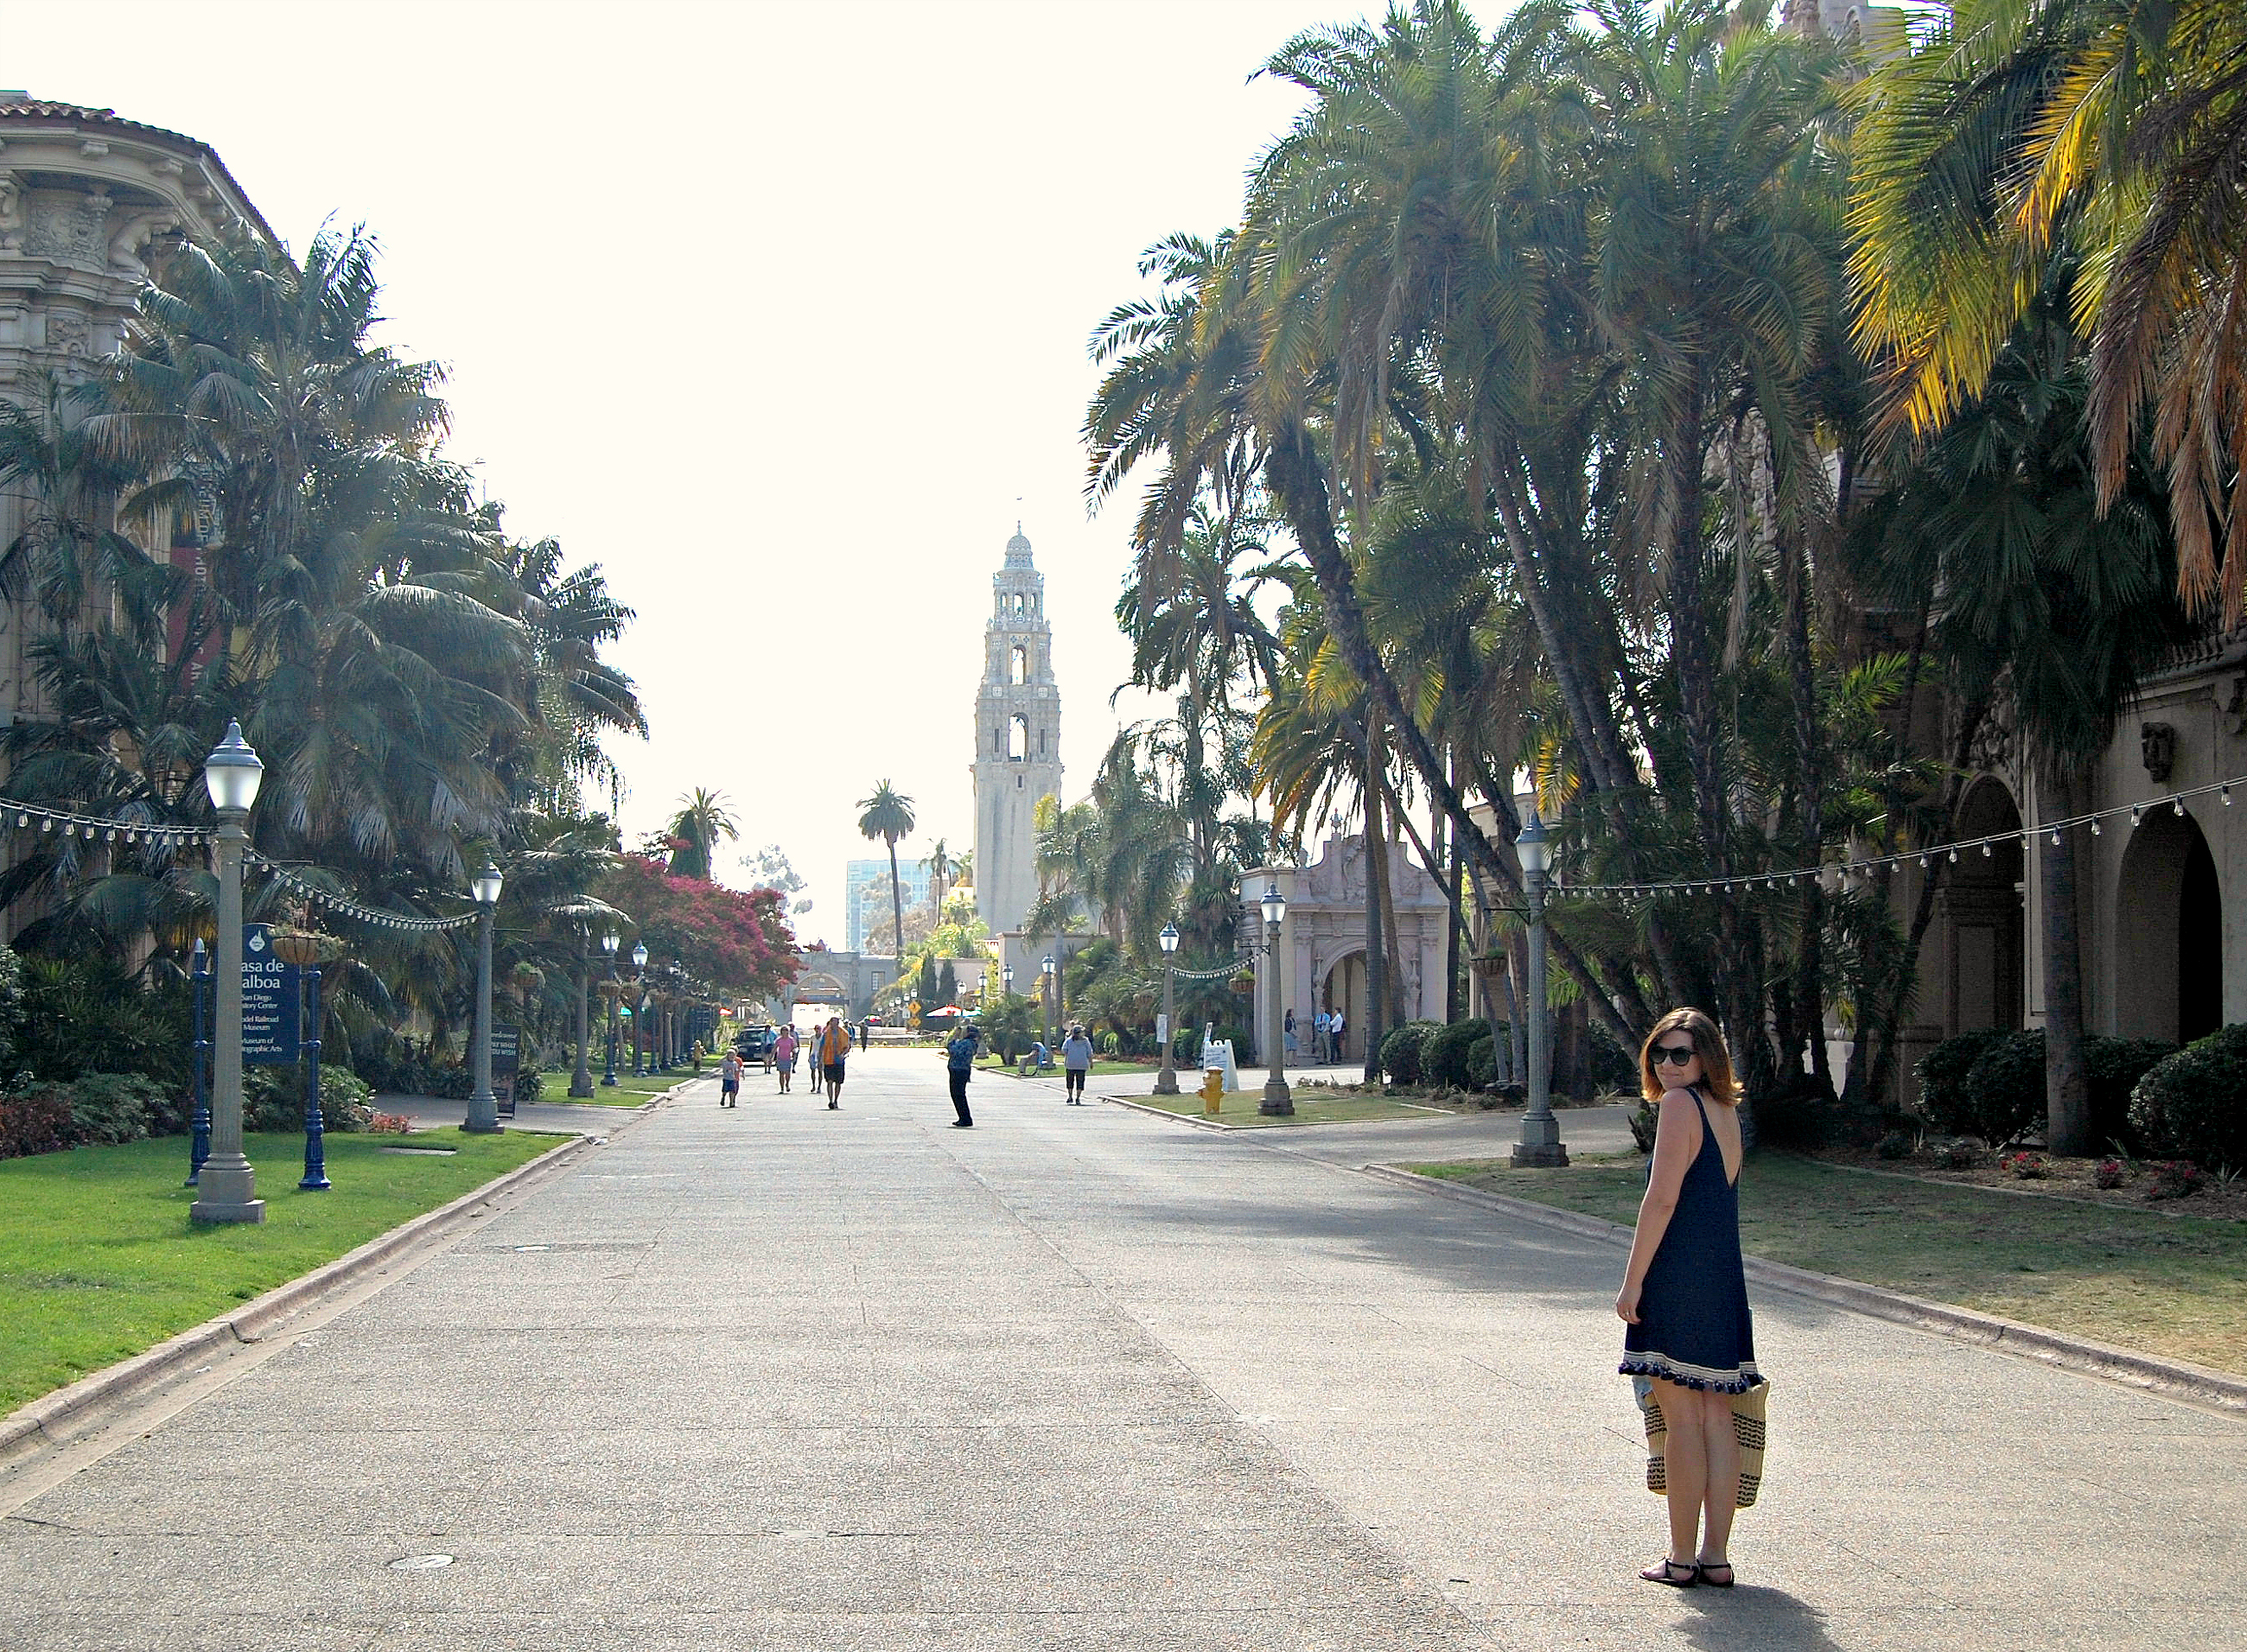 Balboa Park in downtown San Diego, California